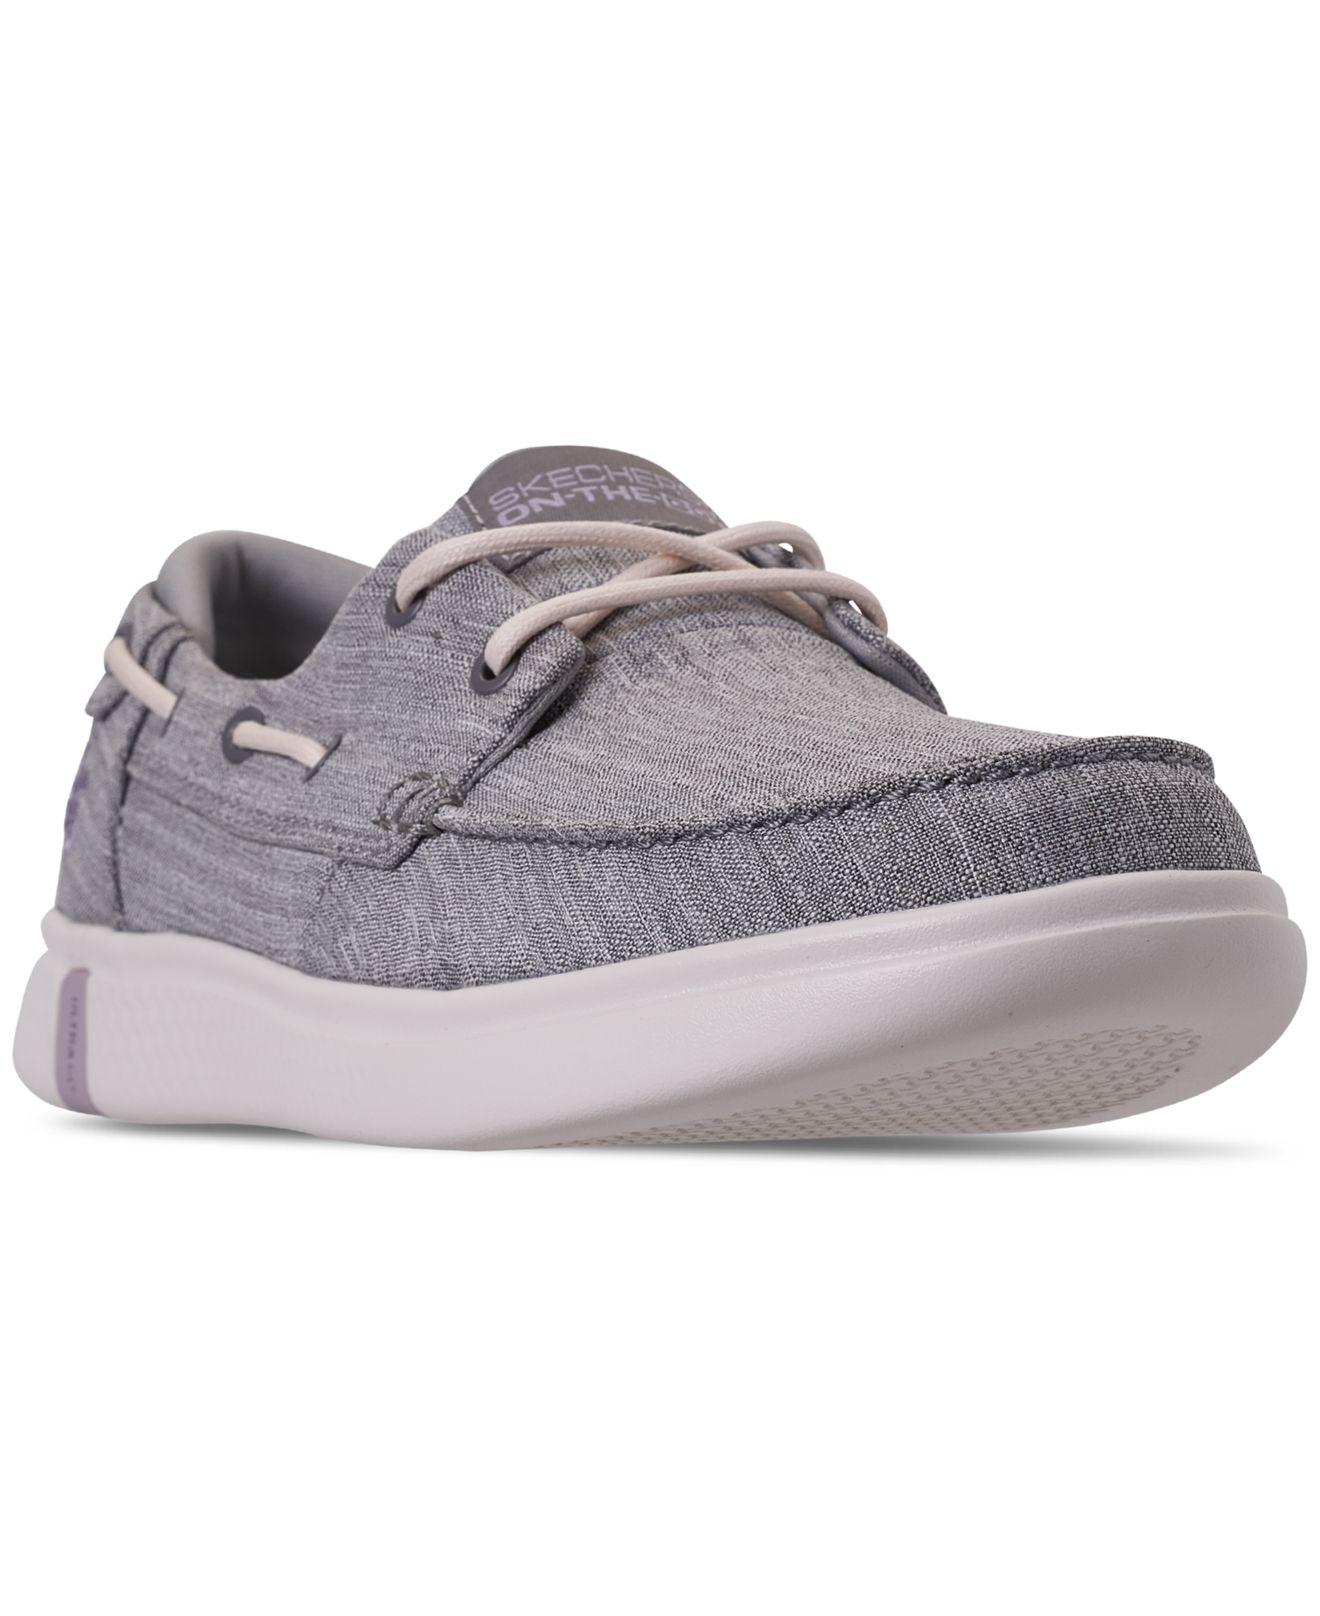 3efadfb1 Lyst - Skechers On The Go Glide Ultra Boat Casual Sneakers From ...